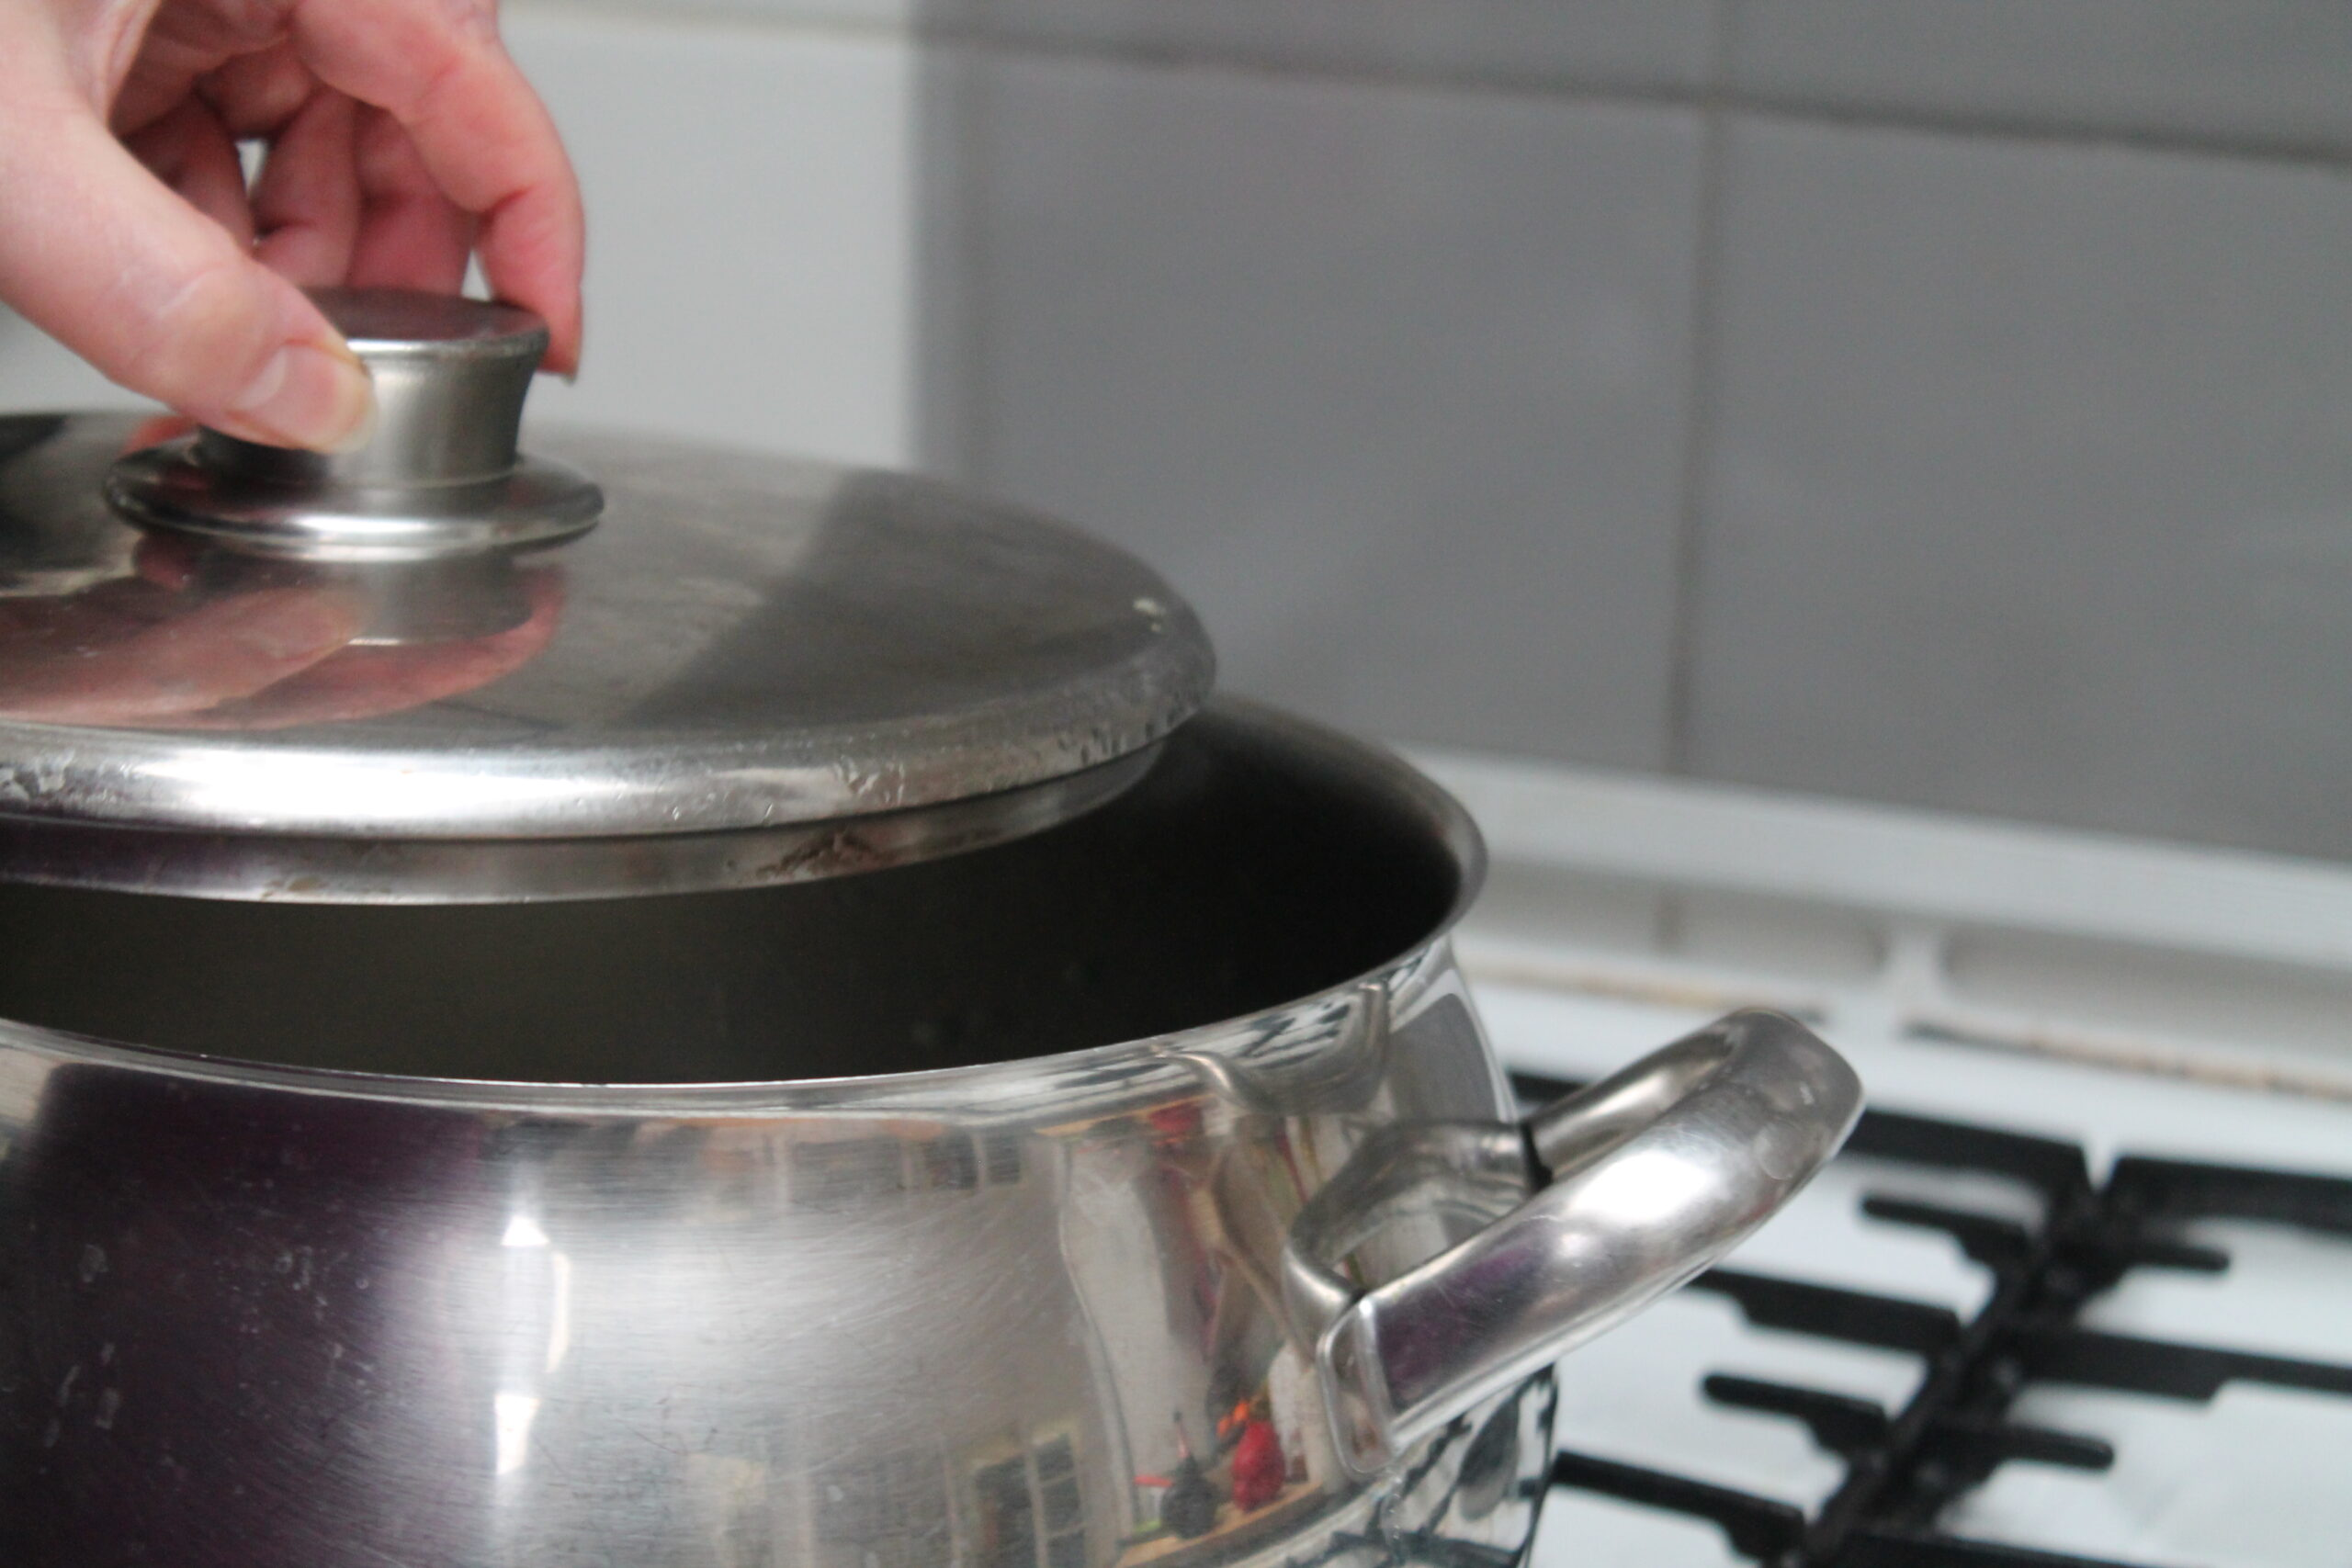 Pan on stove with lid being opened. What is inside? Is the food being cooked properly?